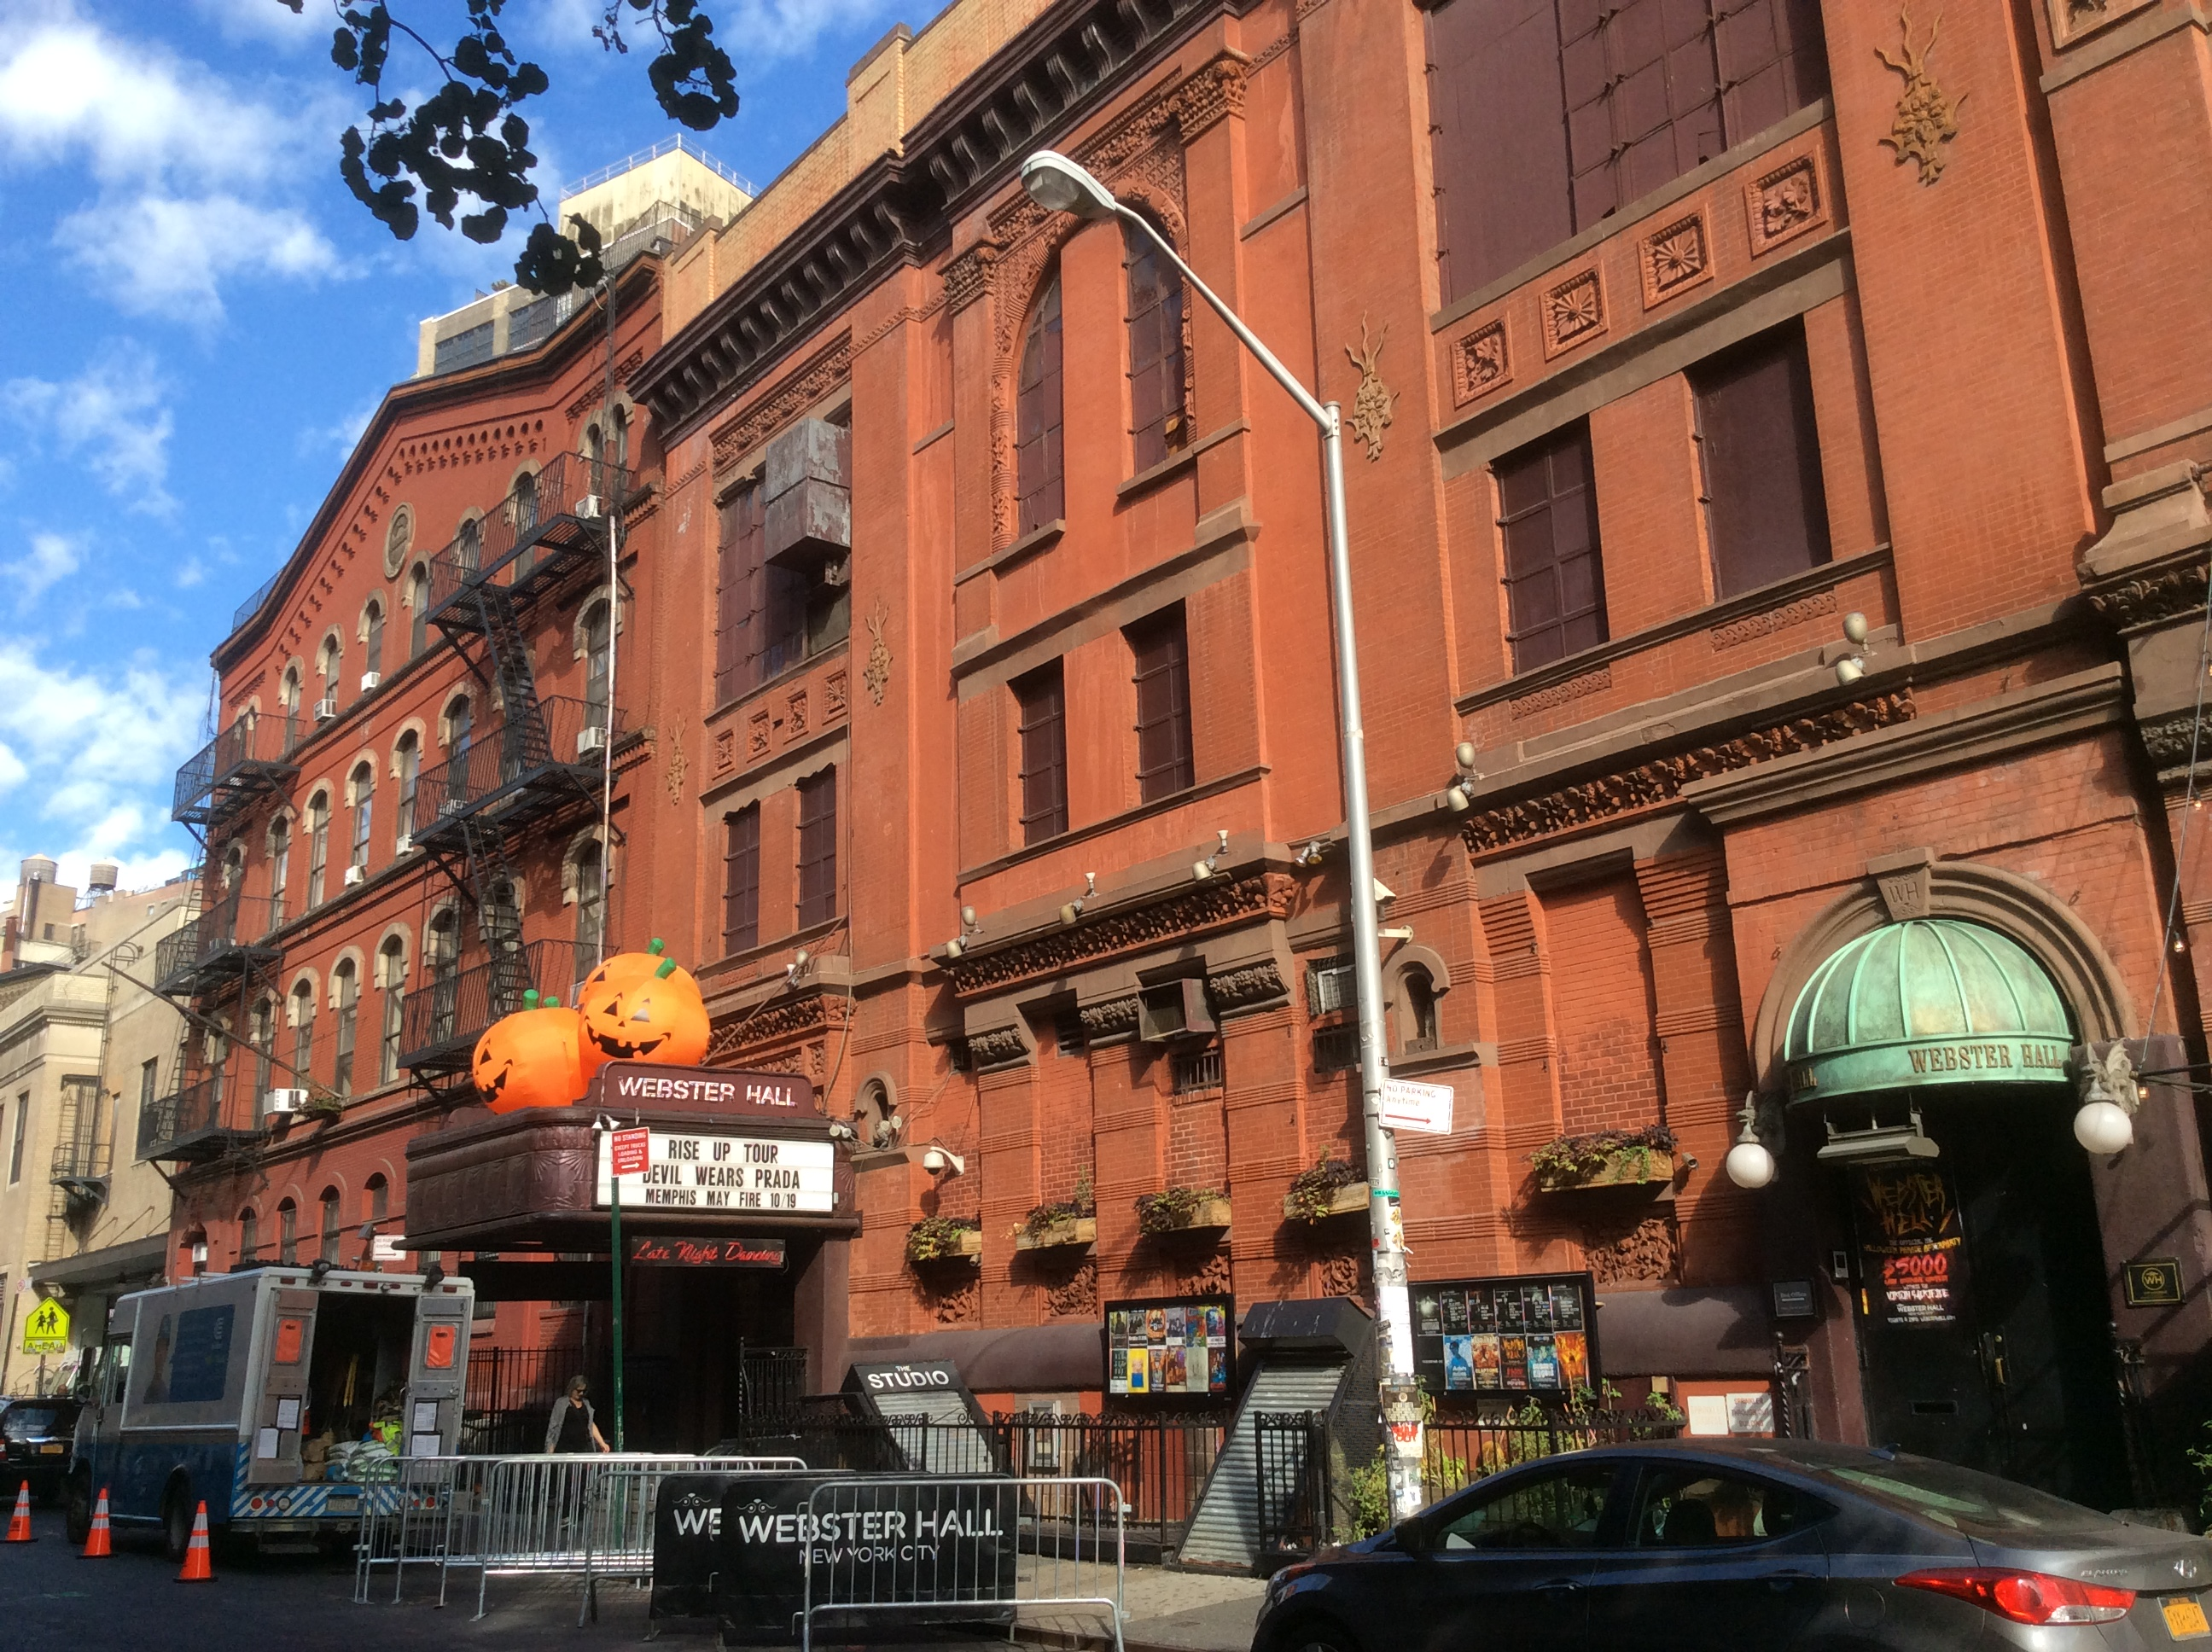 Webster Hall in October, festooned with pumpkin decorations, New York City